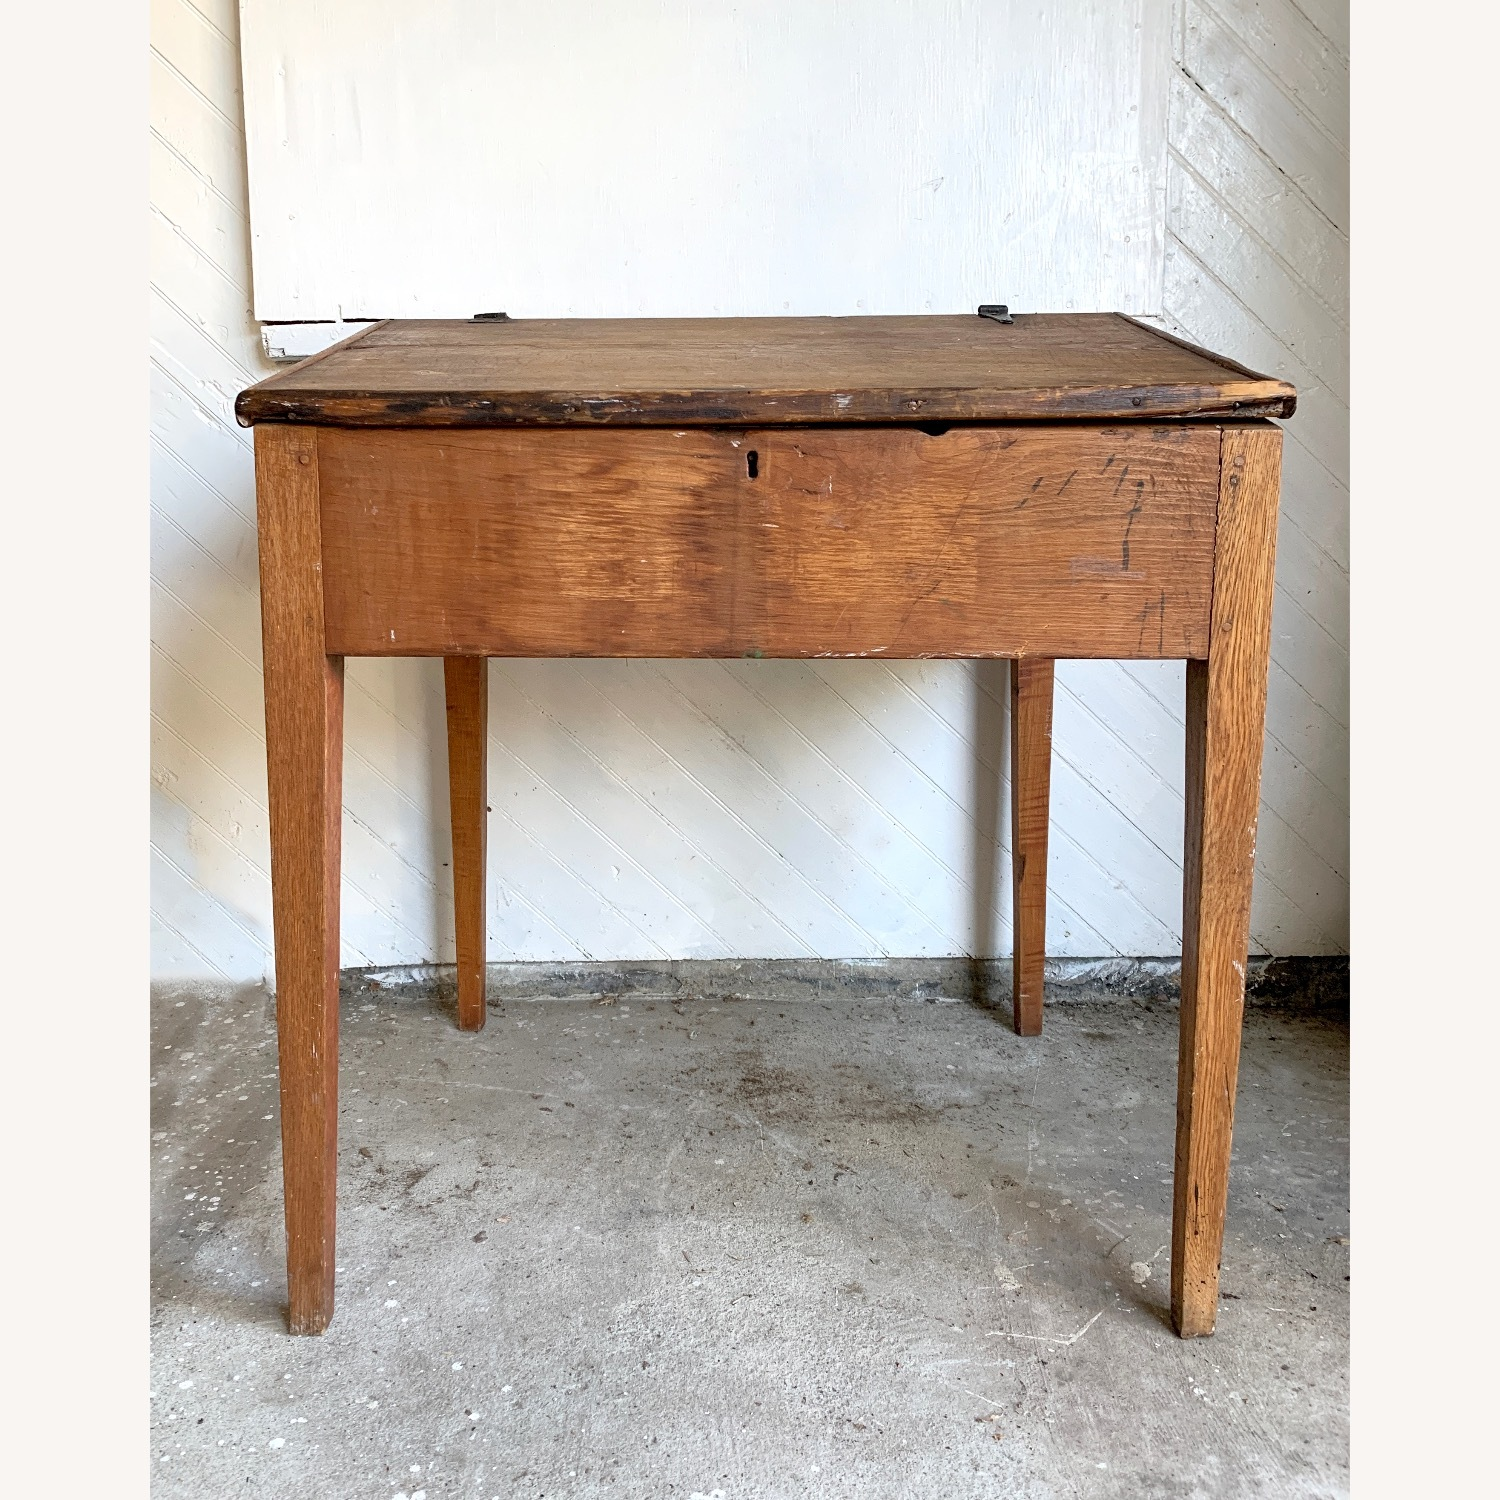 Antique Wooden Slant-top Desk with Storage - image-4